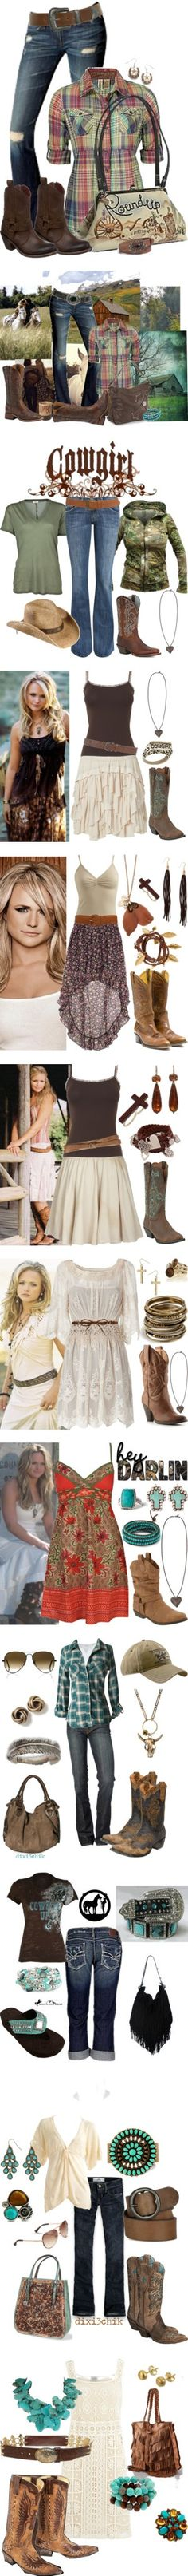 Perfect! ♥♥♥ Country Cute like allot of these outfits